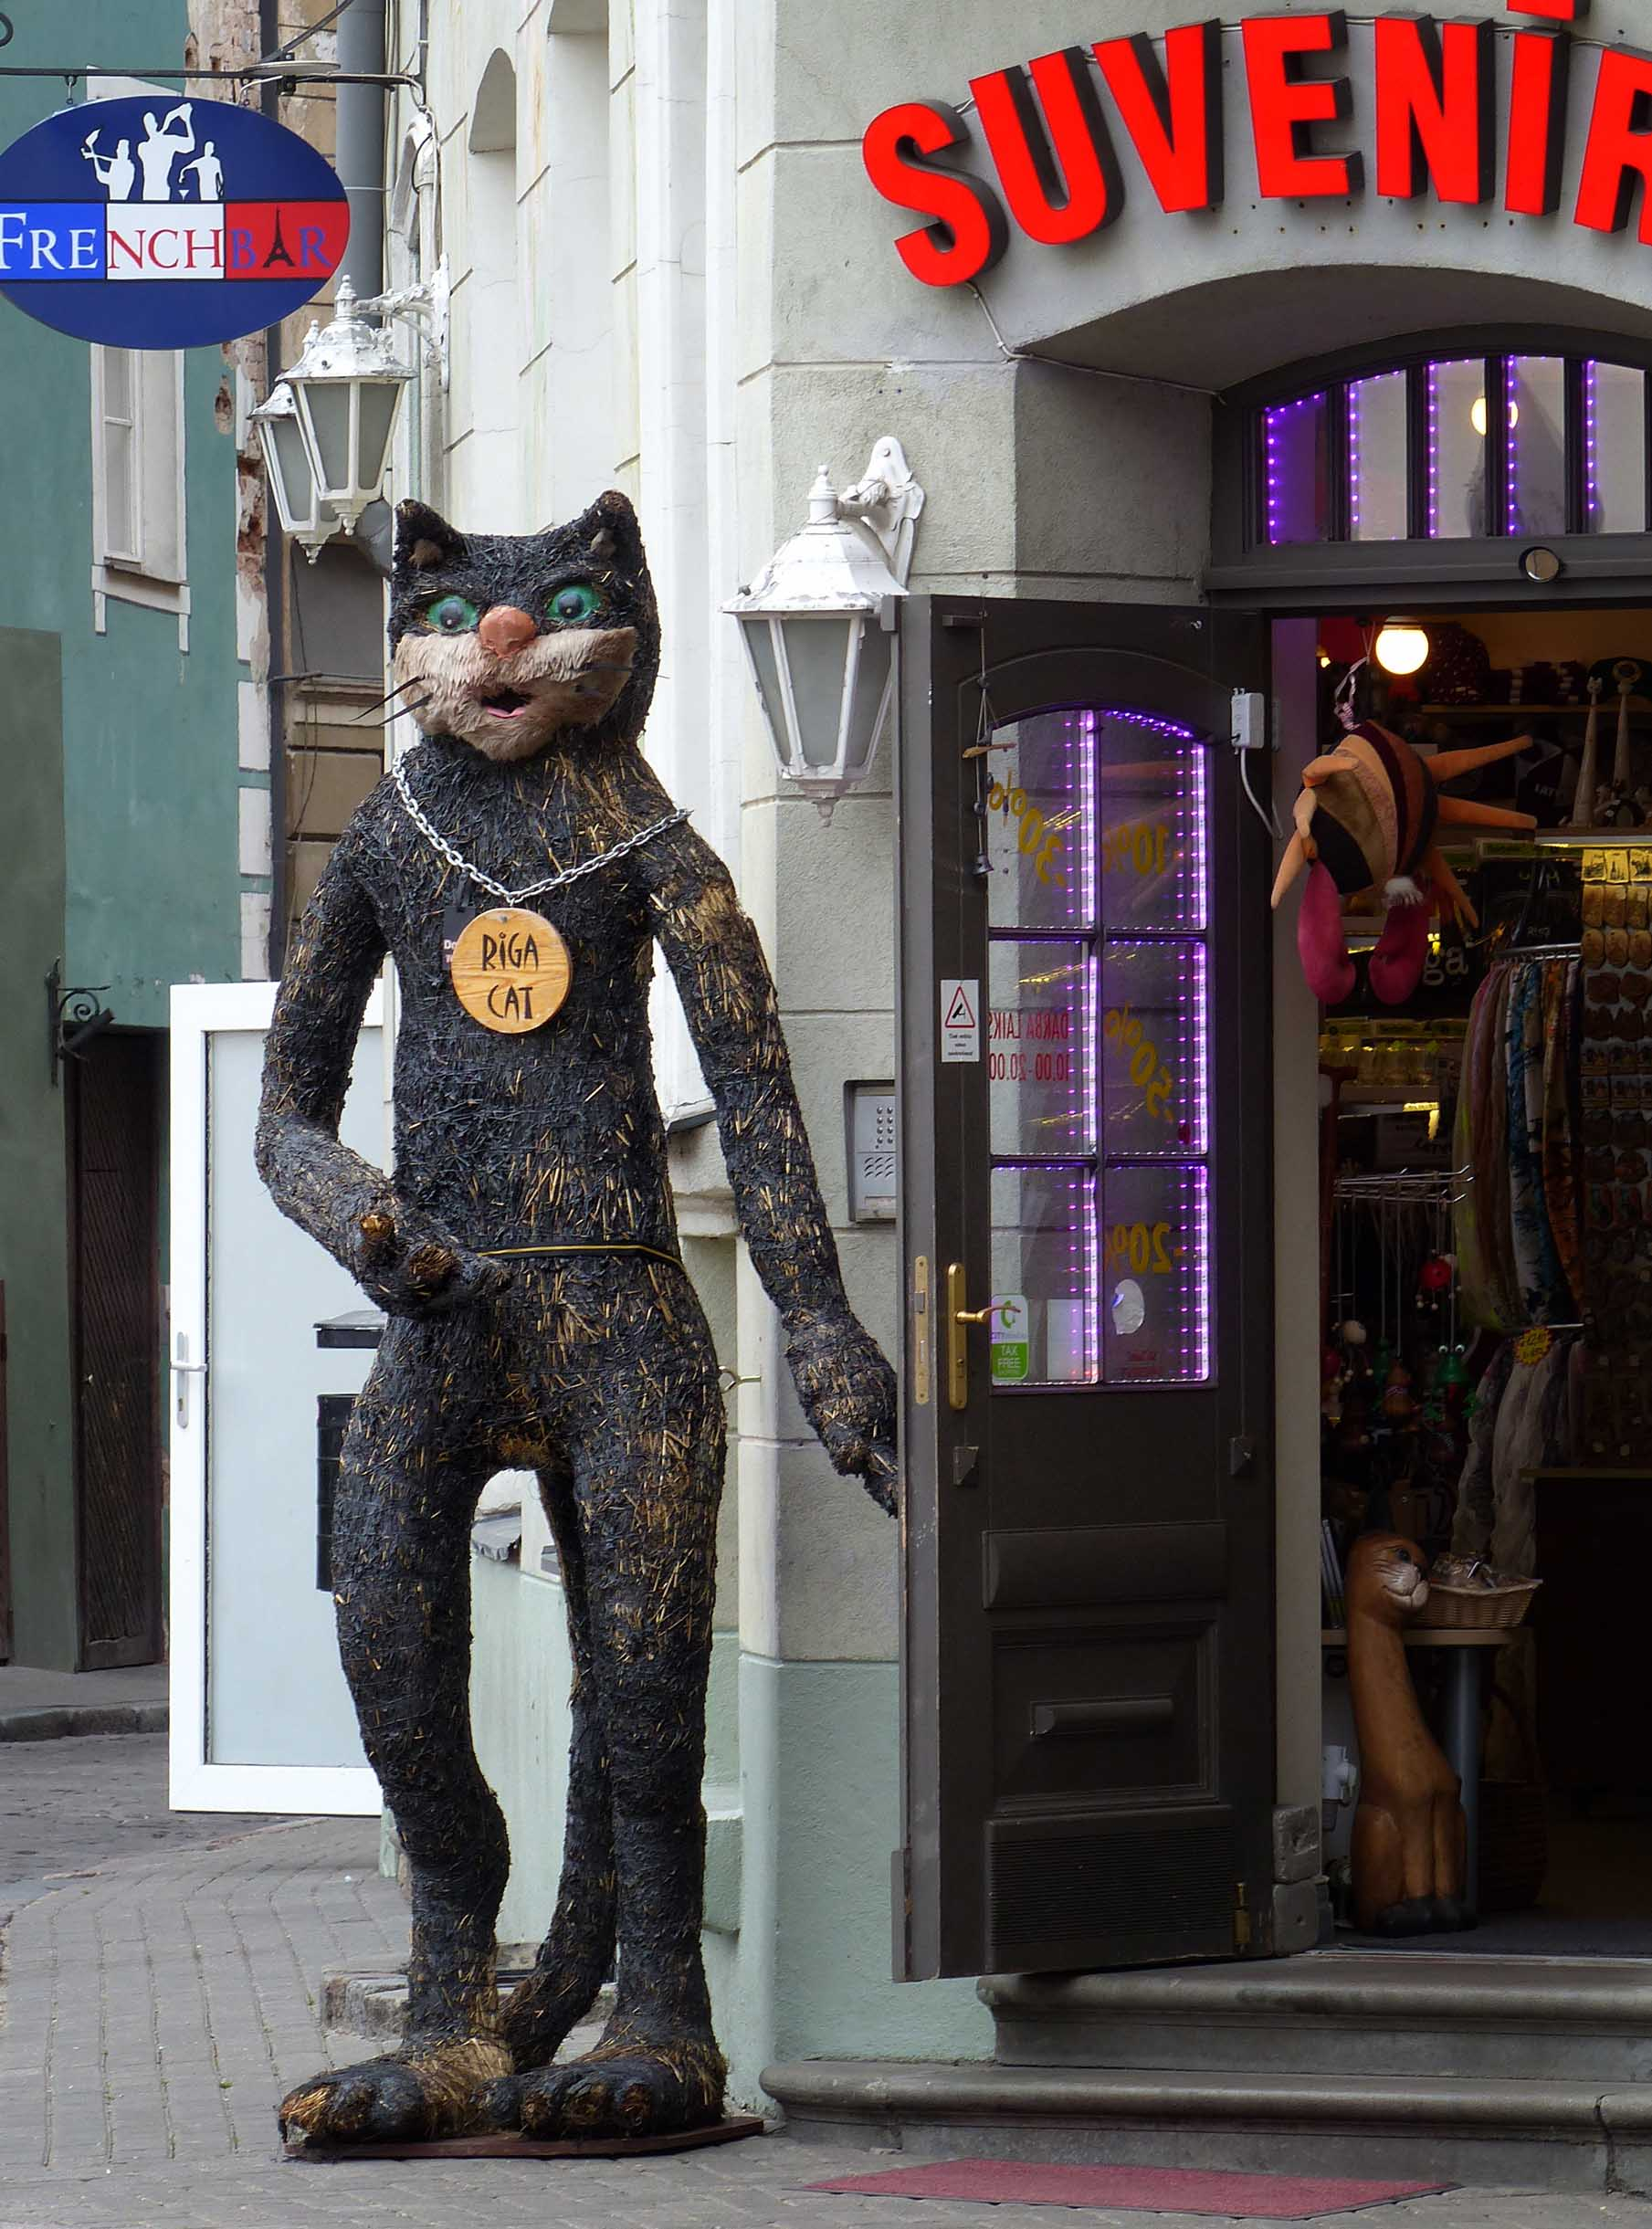 Large upright black cat by a shop doorway